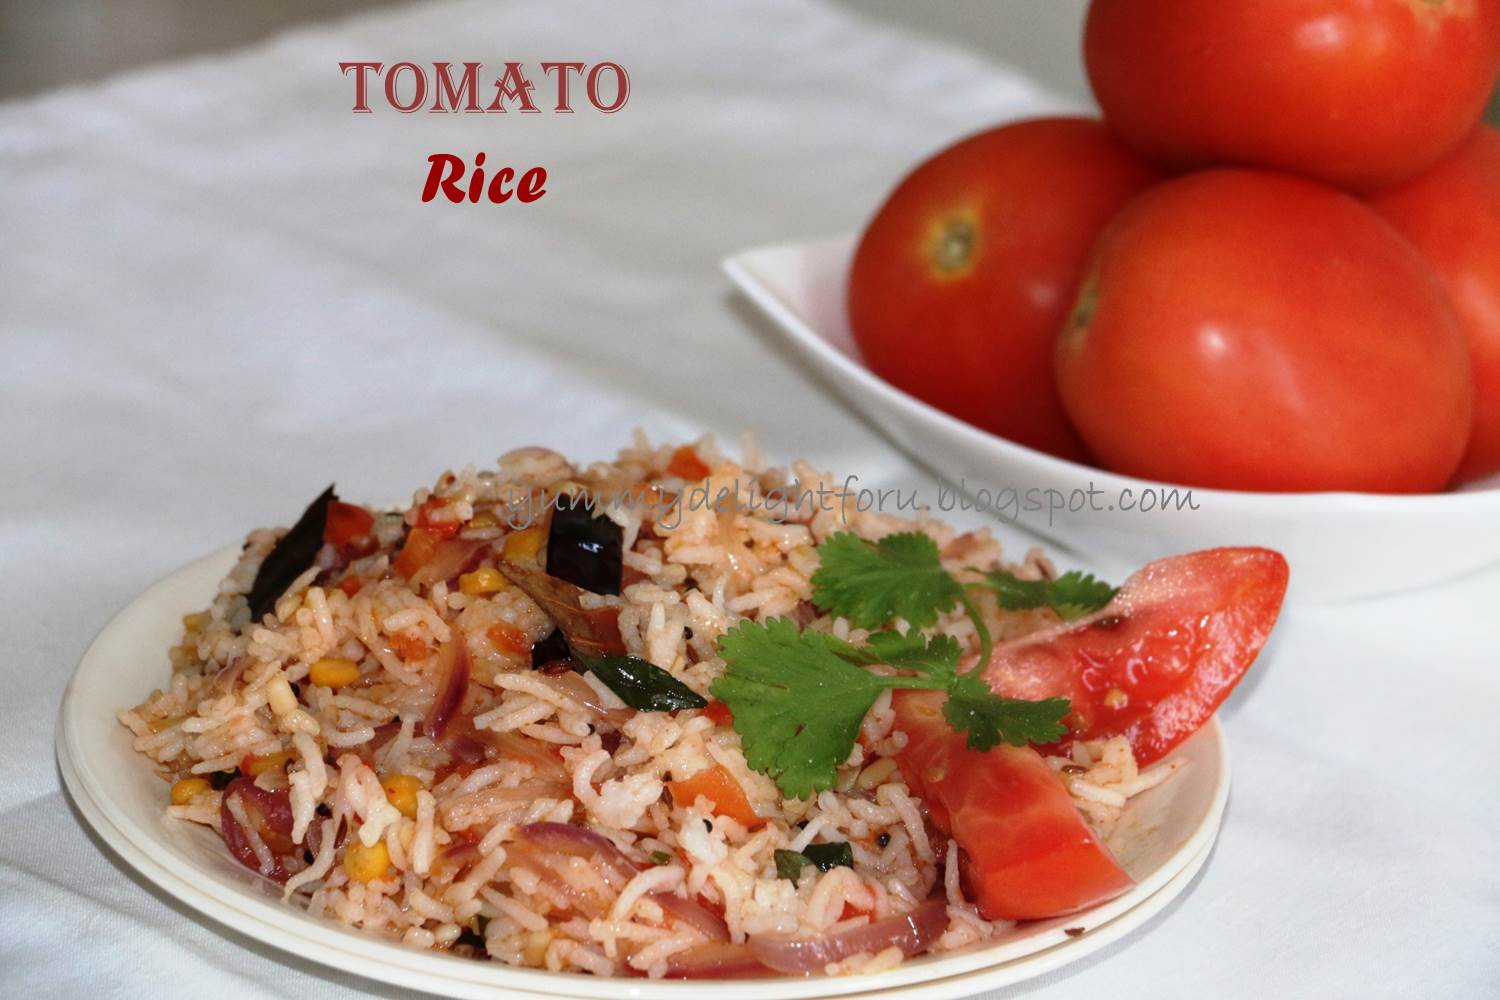 Yummy delight for u tomato rice recipe how to make tomato fried rice my mother made this tomato rice pretty often especially when there was a time constraint andor there was leftover rice quick to put together easy ccuart Choice Image